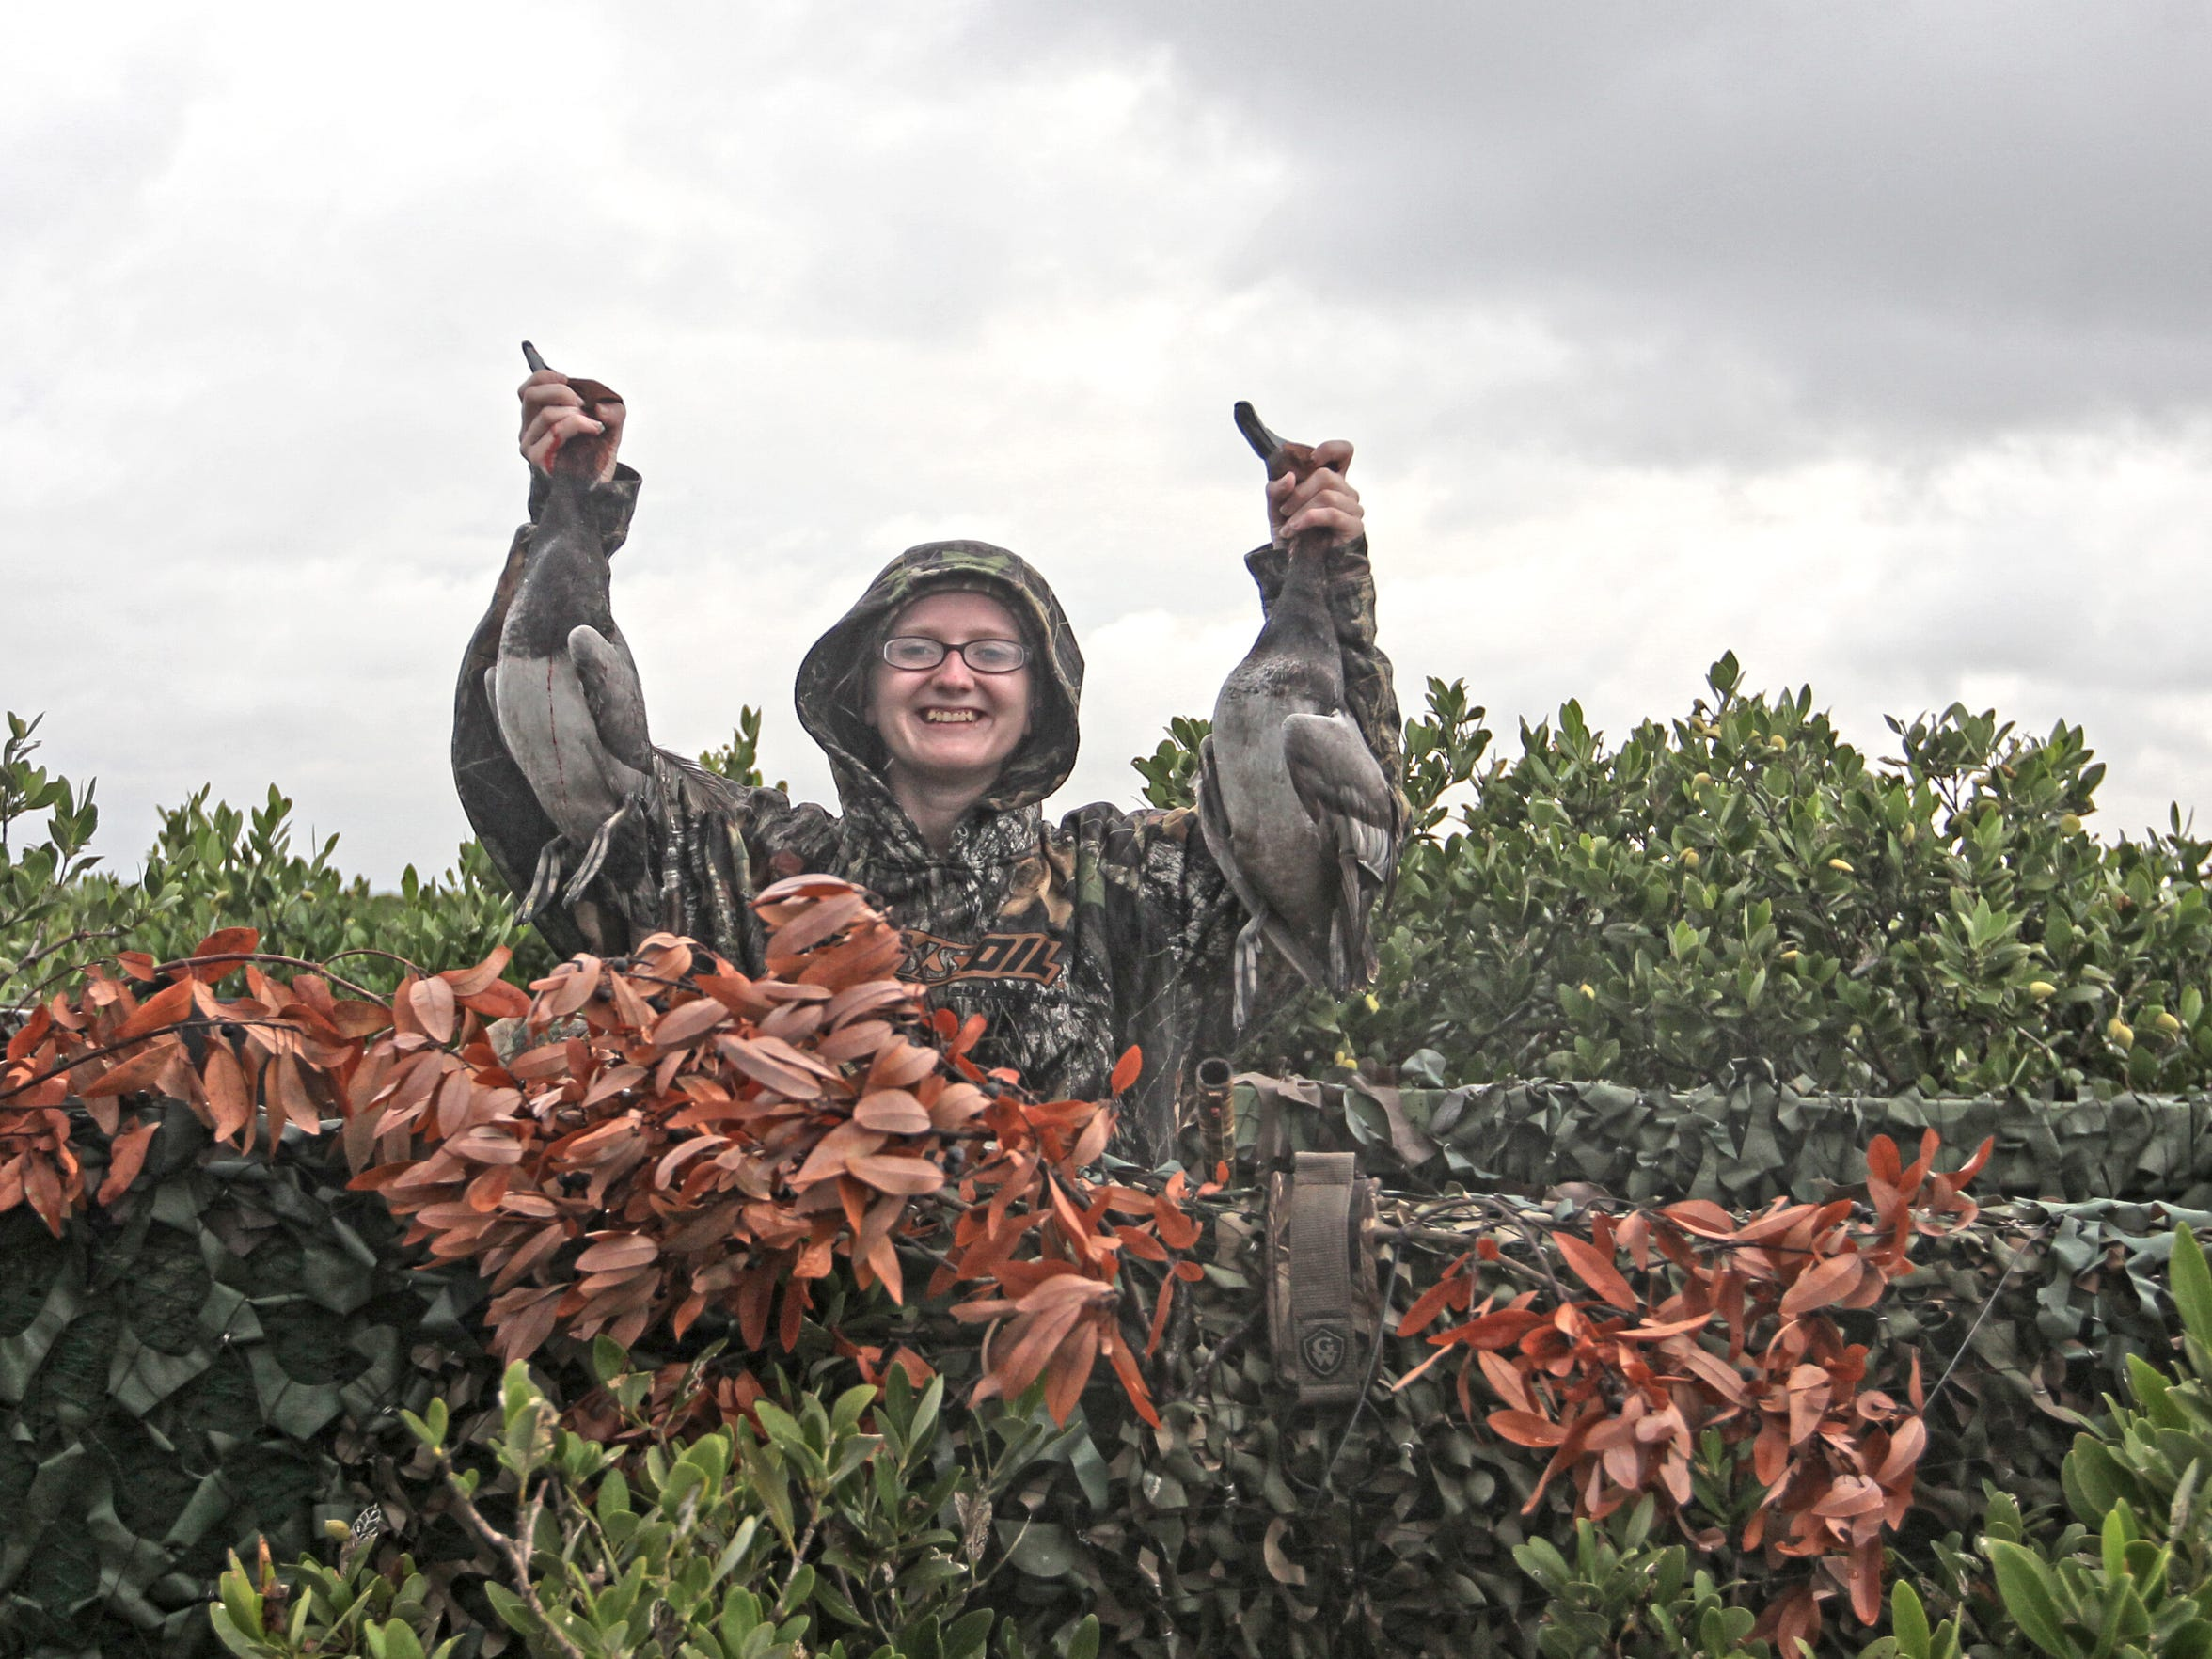 A women near Rockport proudly displays the ducks her party bagged during the early 2017 season.